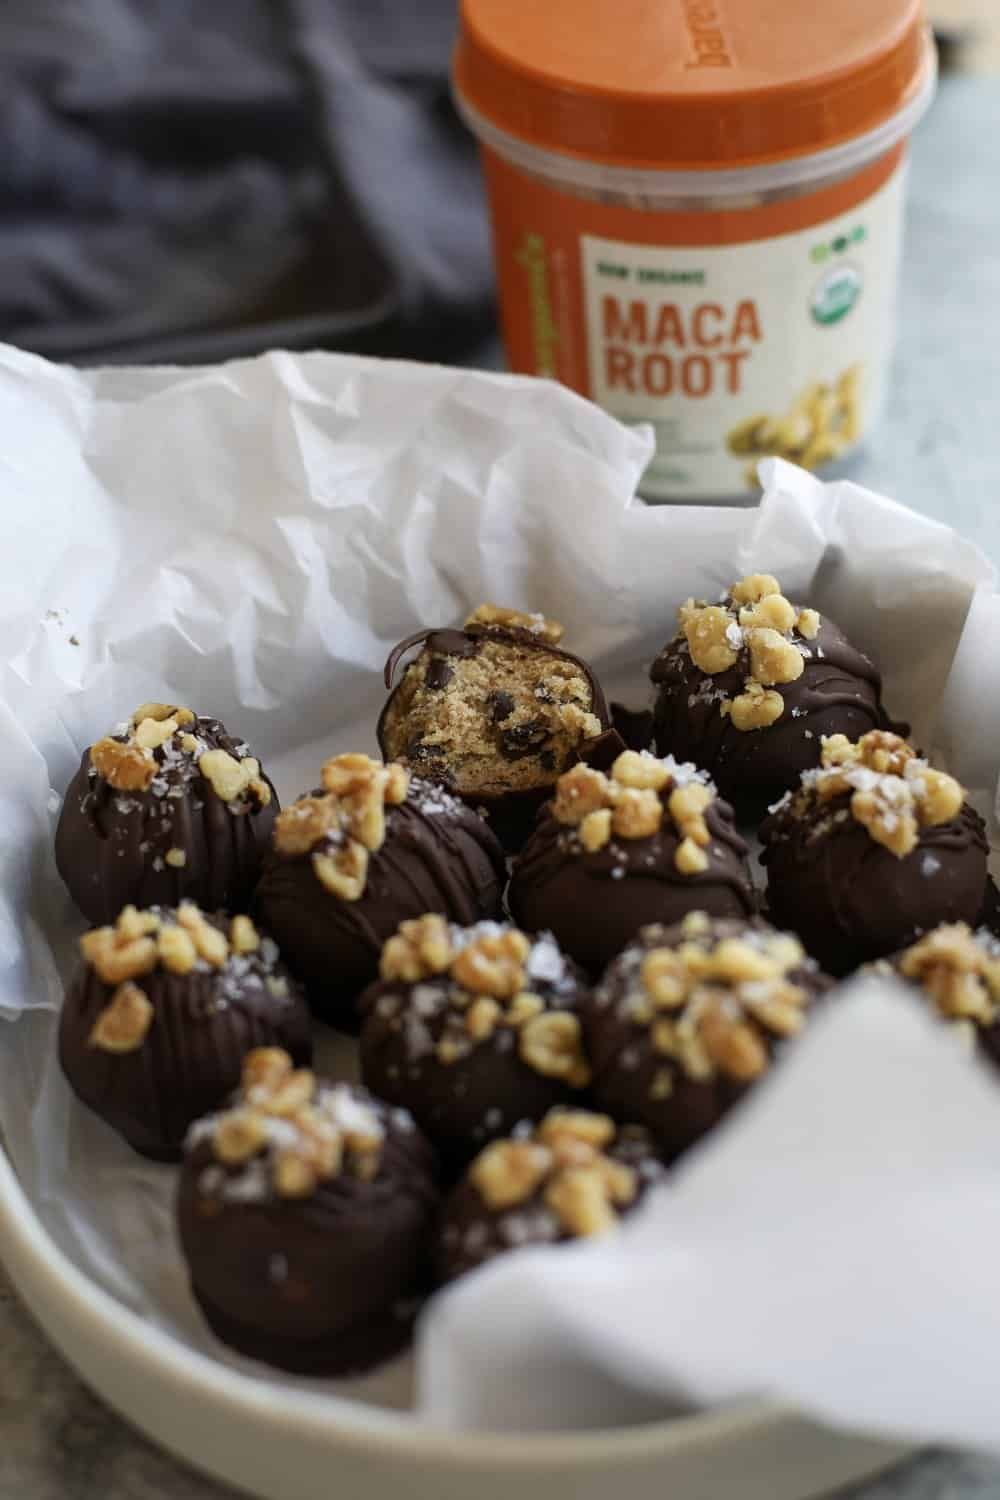 WALNUT TAHINI TRUFFLES - INGREDIENTS1 cup almond flour3/4 cup tahini1 tsp cinnamon1 scoop collagen peptides (optional)1/2 cup maple syrup1/2 cup crushed walnuts1 tb Bare Organics Superfoods Maca Powder 1 cup dairy free chocolate chipssea salt flakes